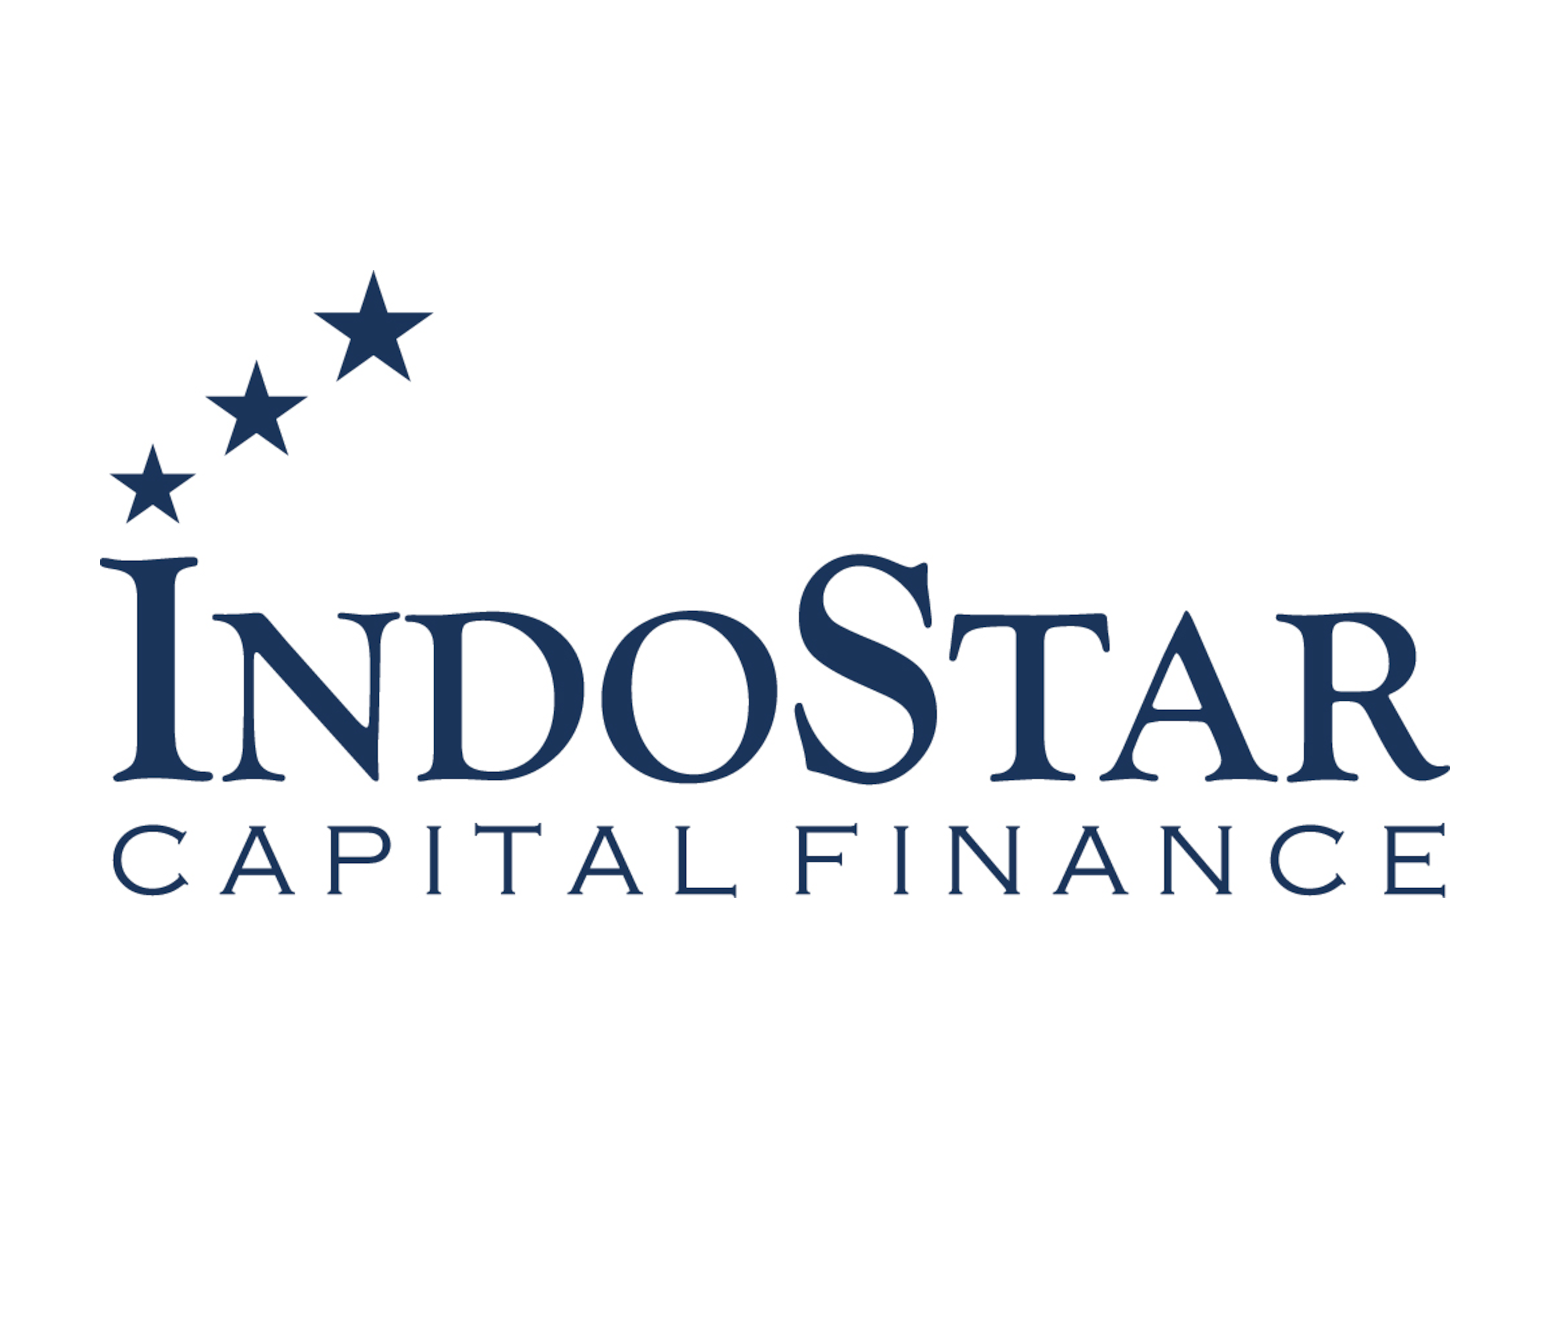 "IndoStar Capital is a non-bank finance company (""NBFC"") in India, providing structured term financing solutions to corporates, loans to SME borrowers, and solutions for both vehicle and housing finance."